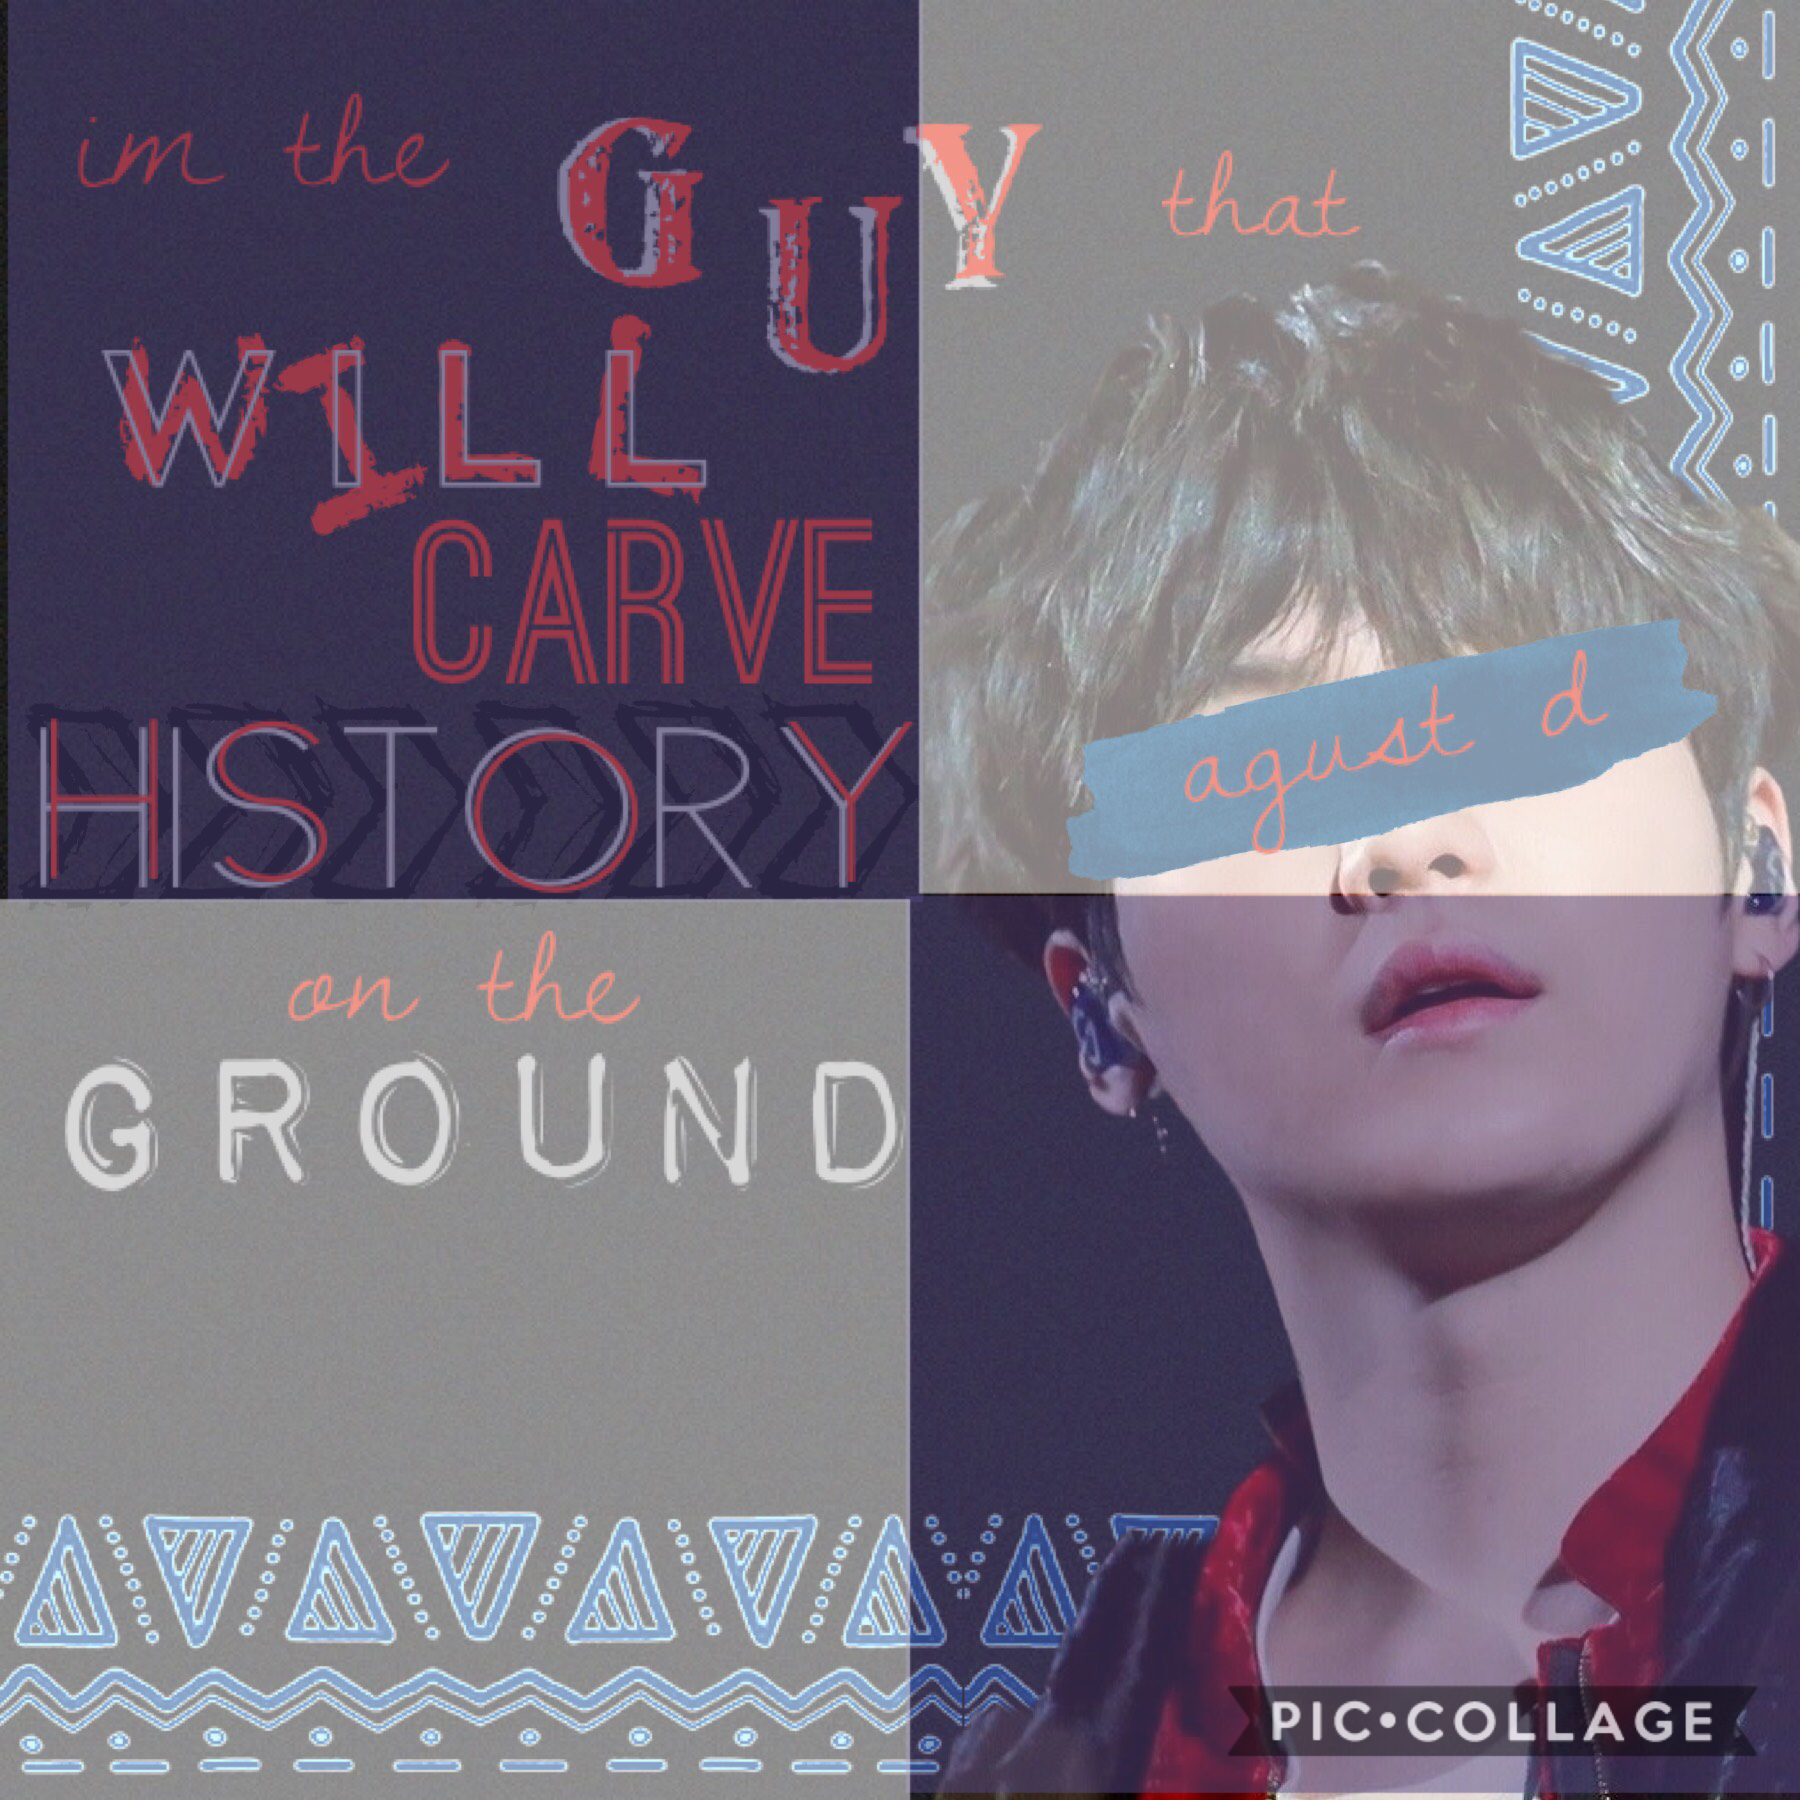 Old edit that I edited, y'all can scroll on my account a bit and can see the old version💙💚💛dIrEcT qUoTeS frOmM aGuSt D yAlL sHouLd KnOw